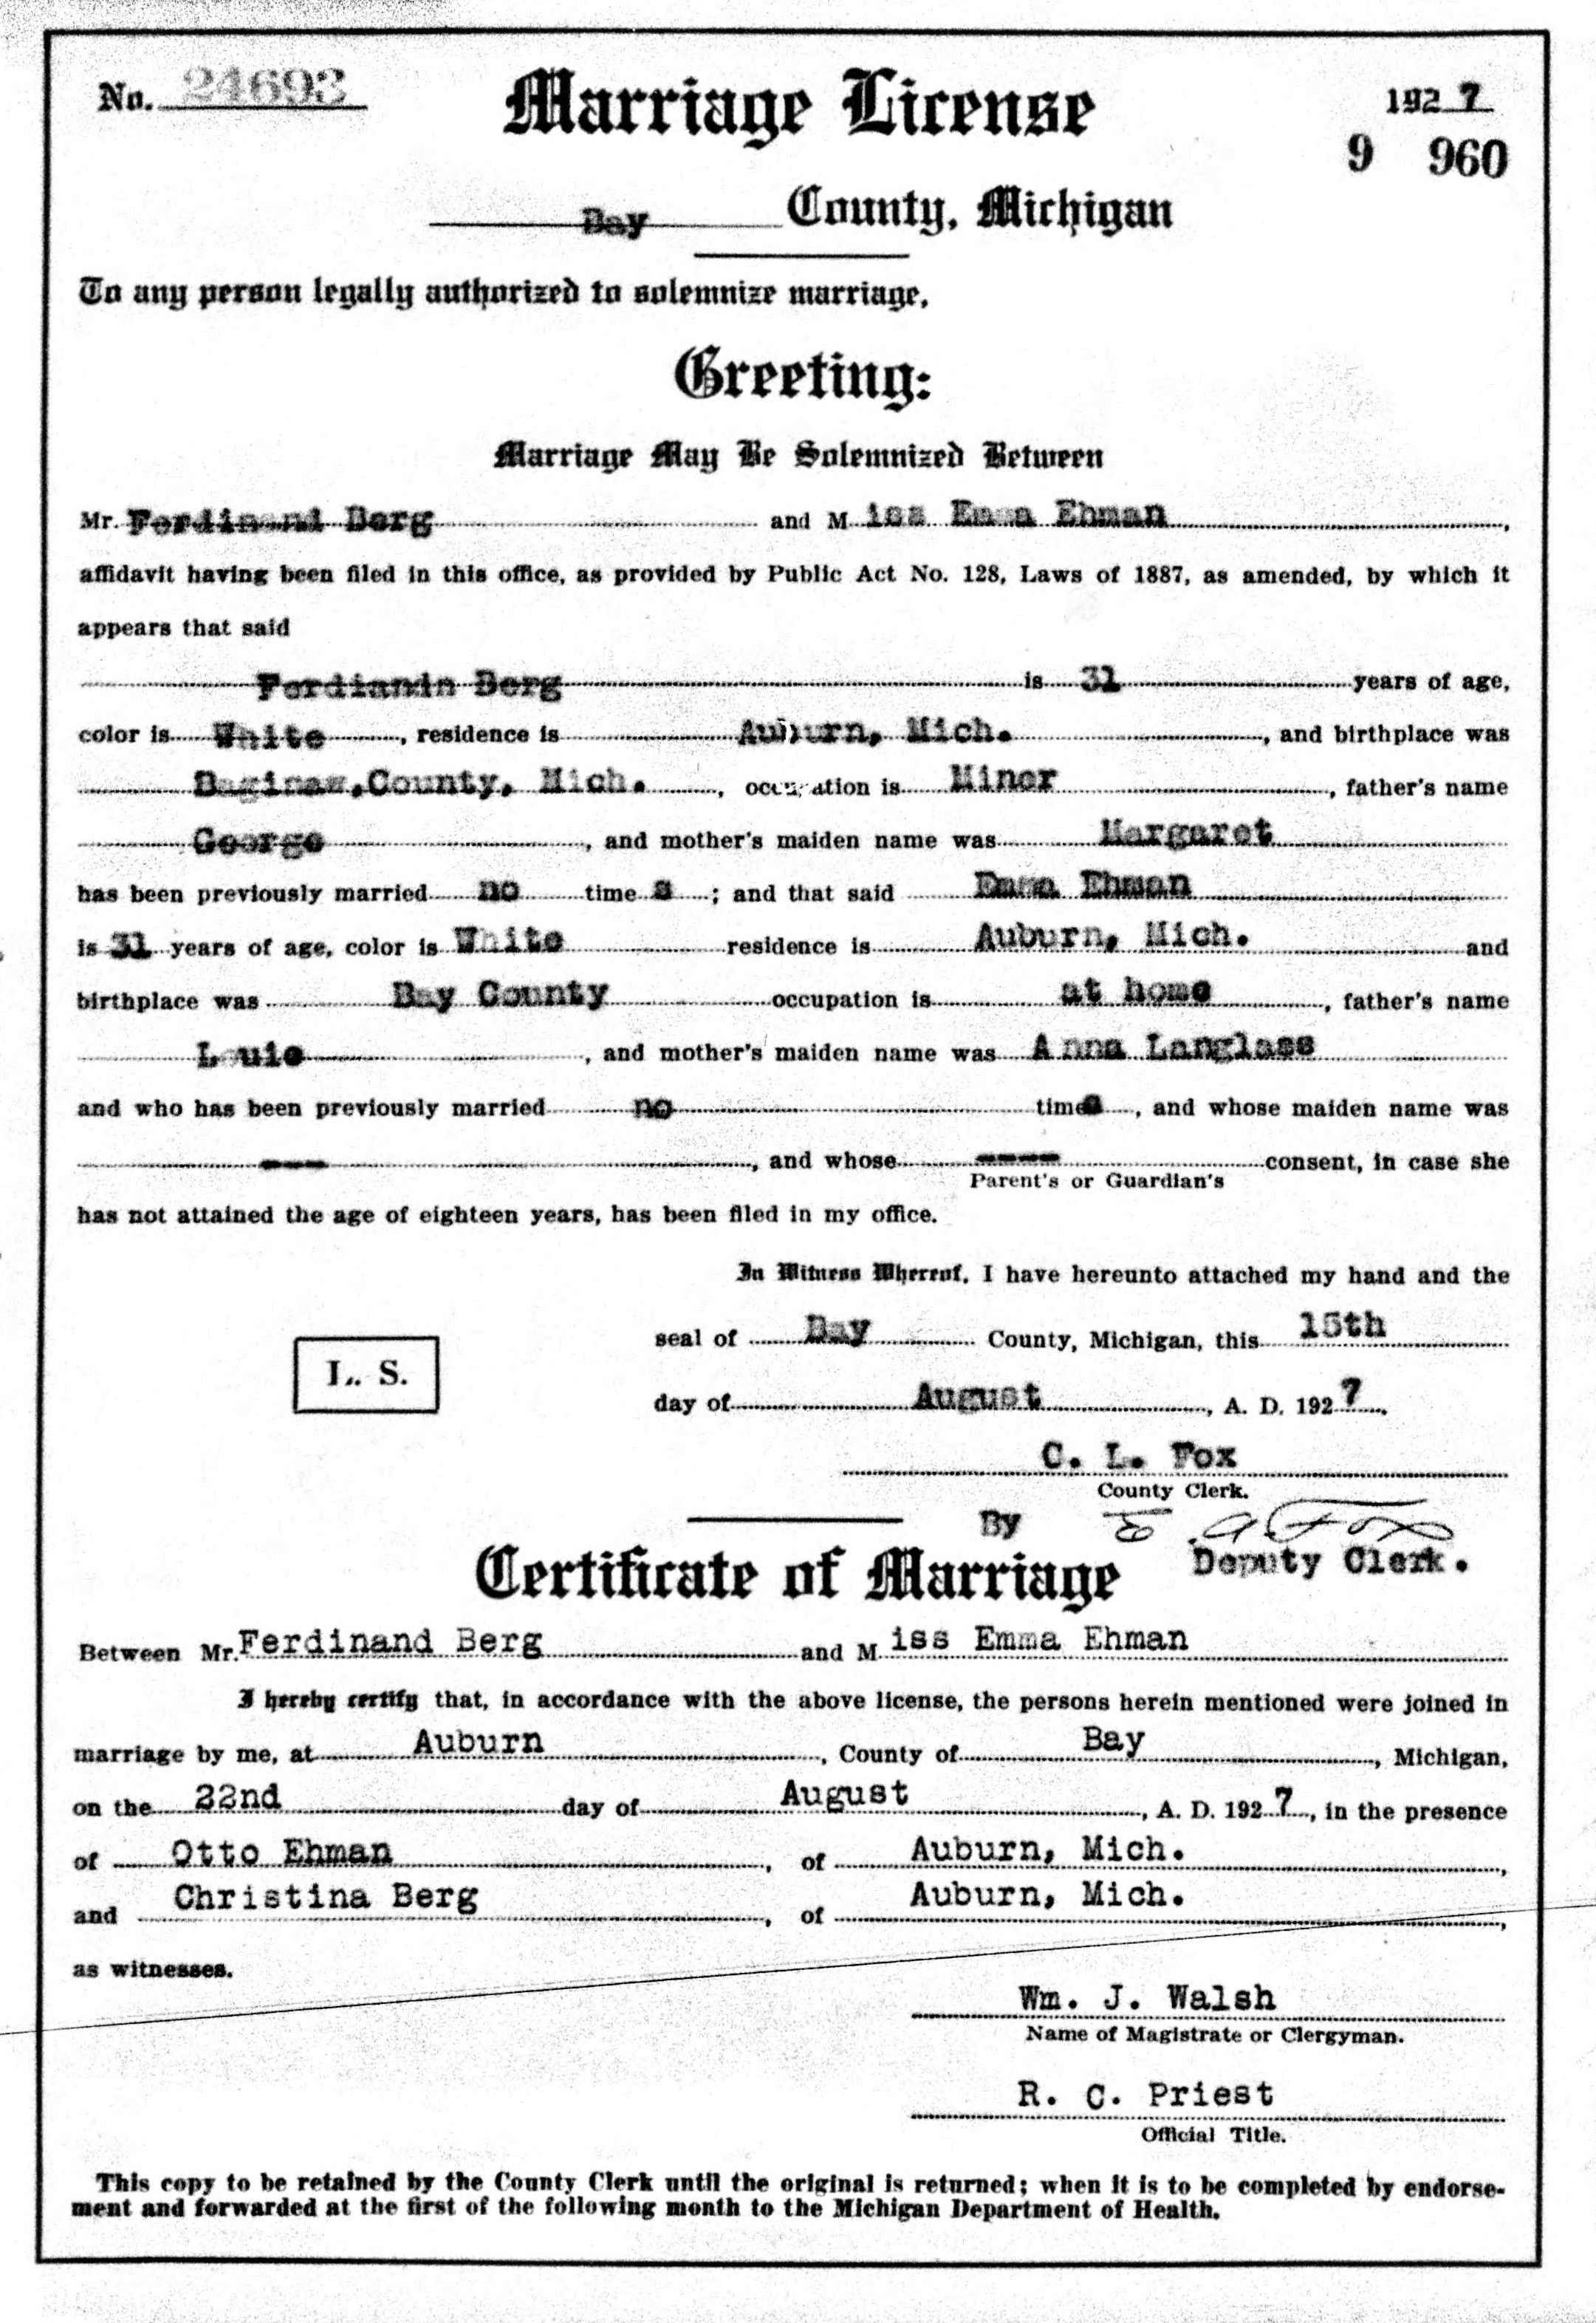 Marriage License for Ferdinand Berg and Emma Ehmann